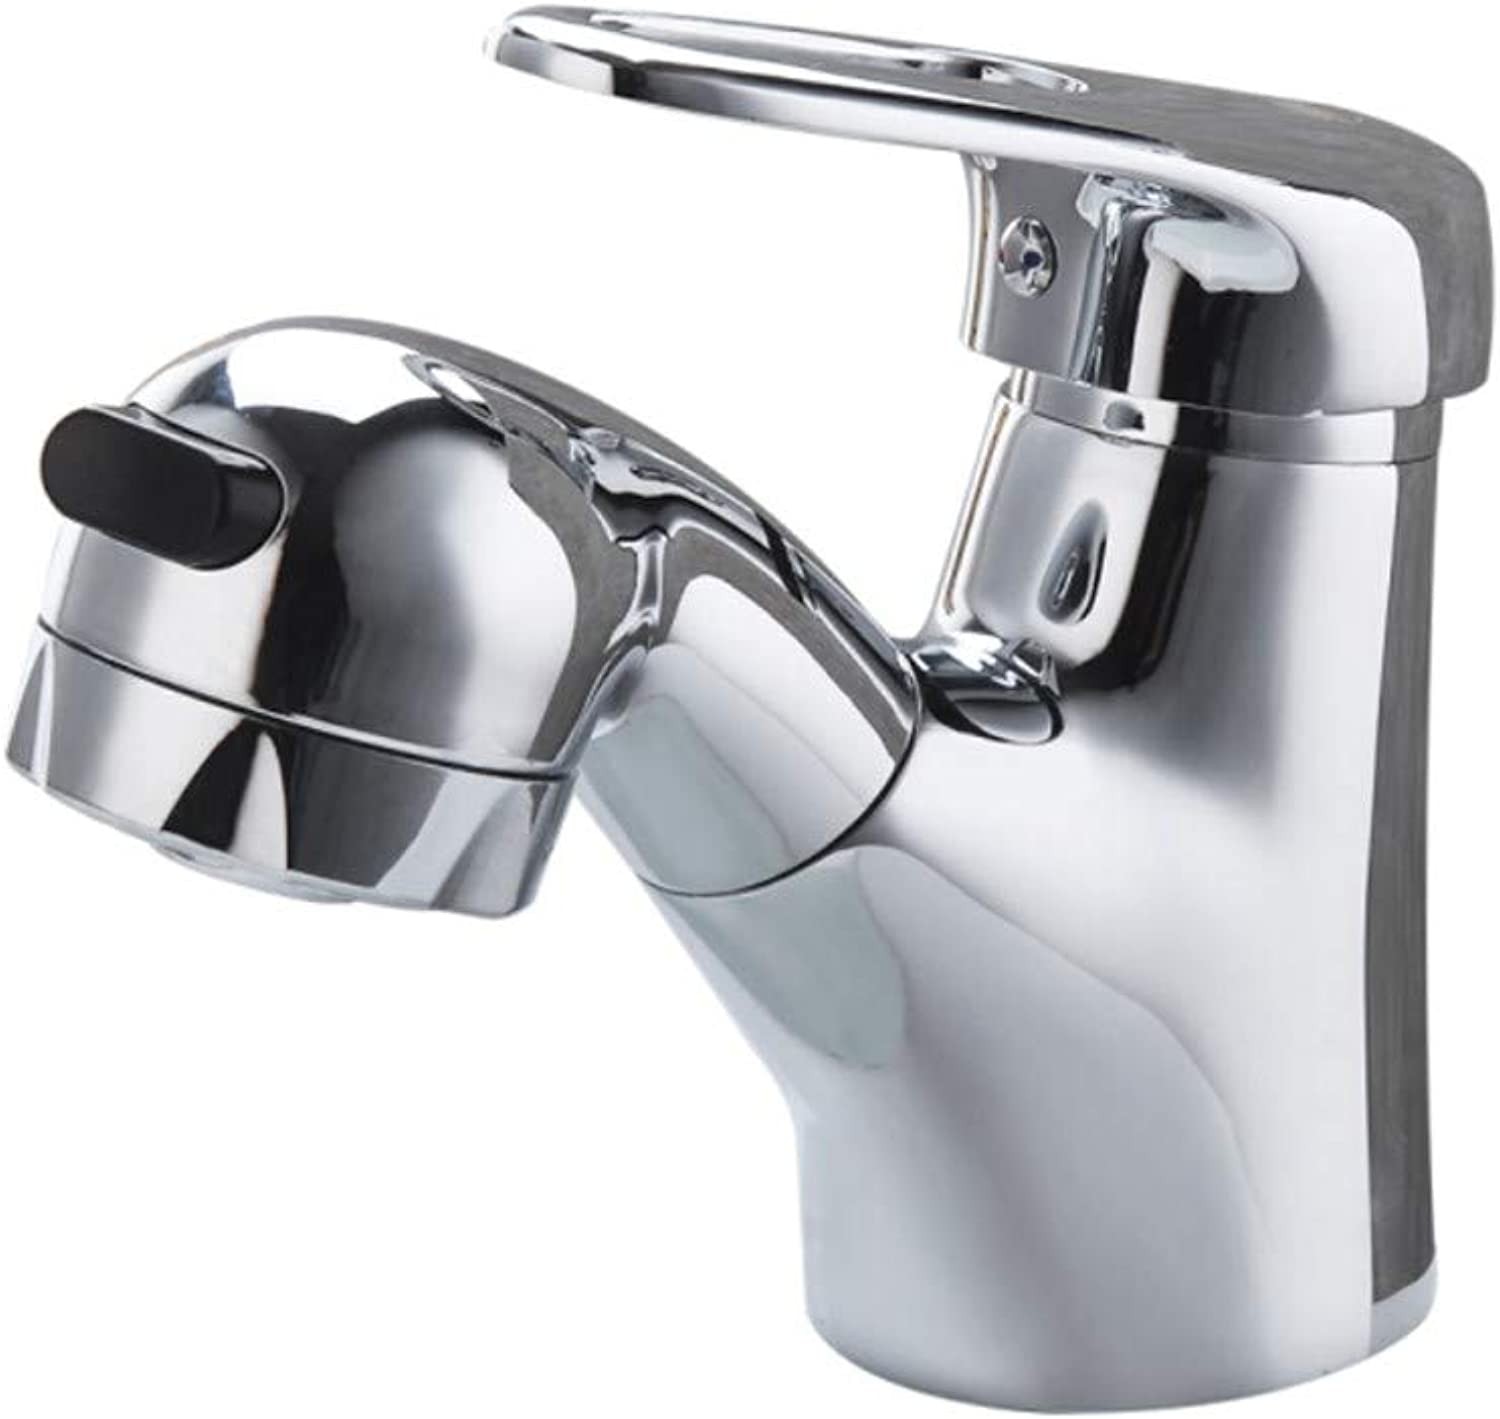 Kitchen Sink Taps Bathroom Taps All Copper Pull-Out Faucet Basin Cold and Hot Basin Faucet Shower Water Column Double Outlet.